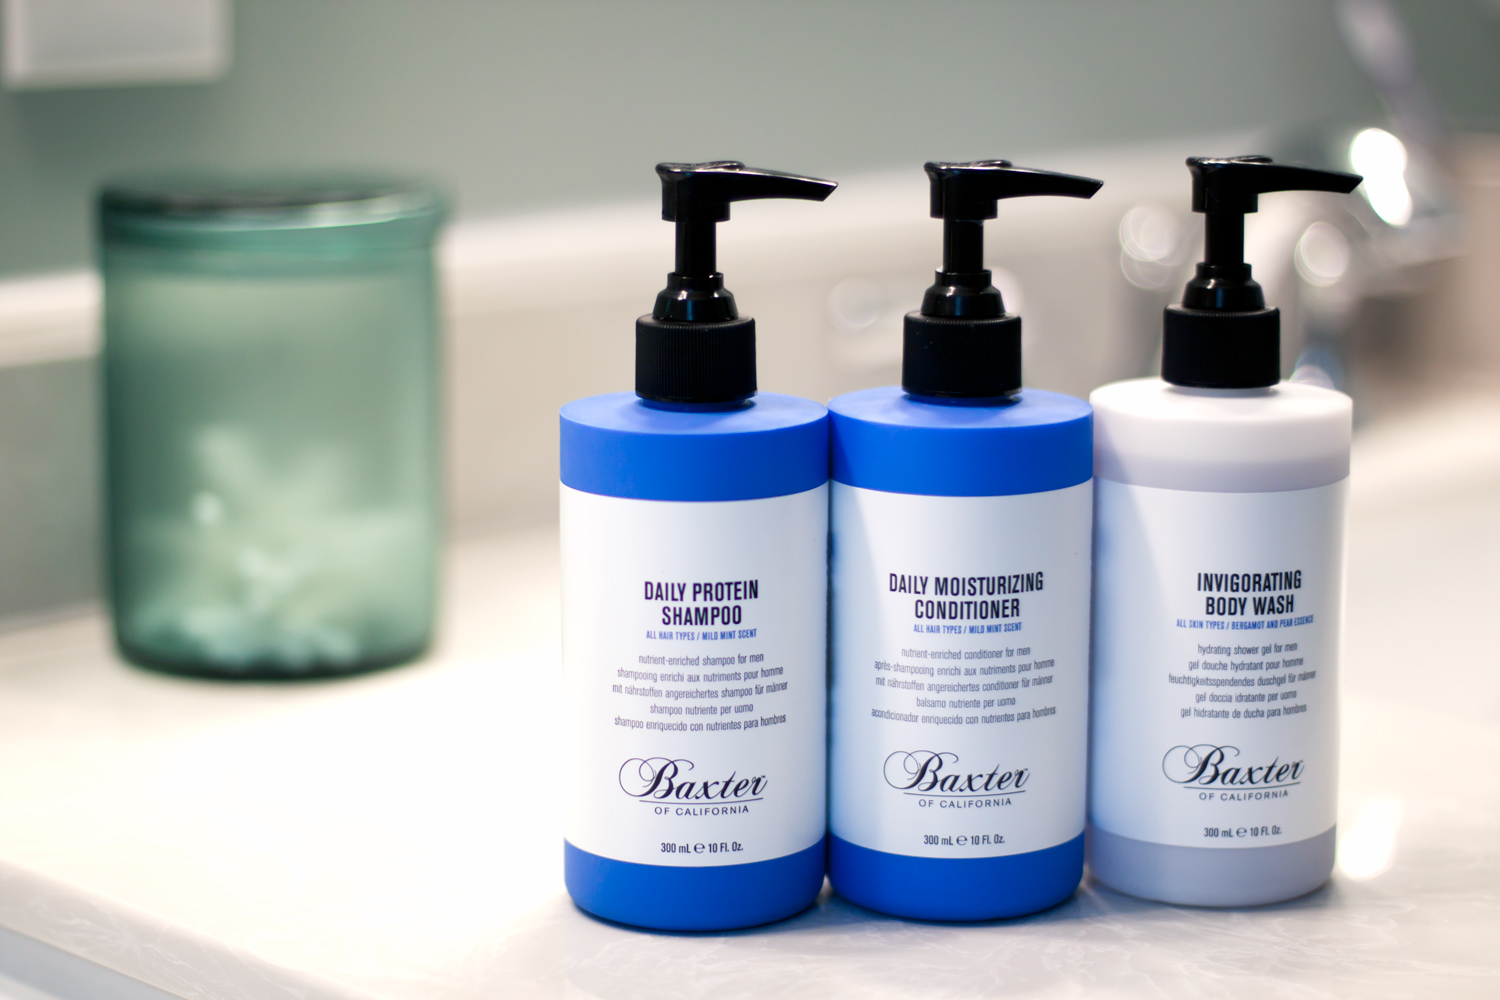 Baxter grooming products